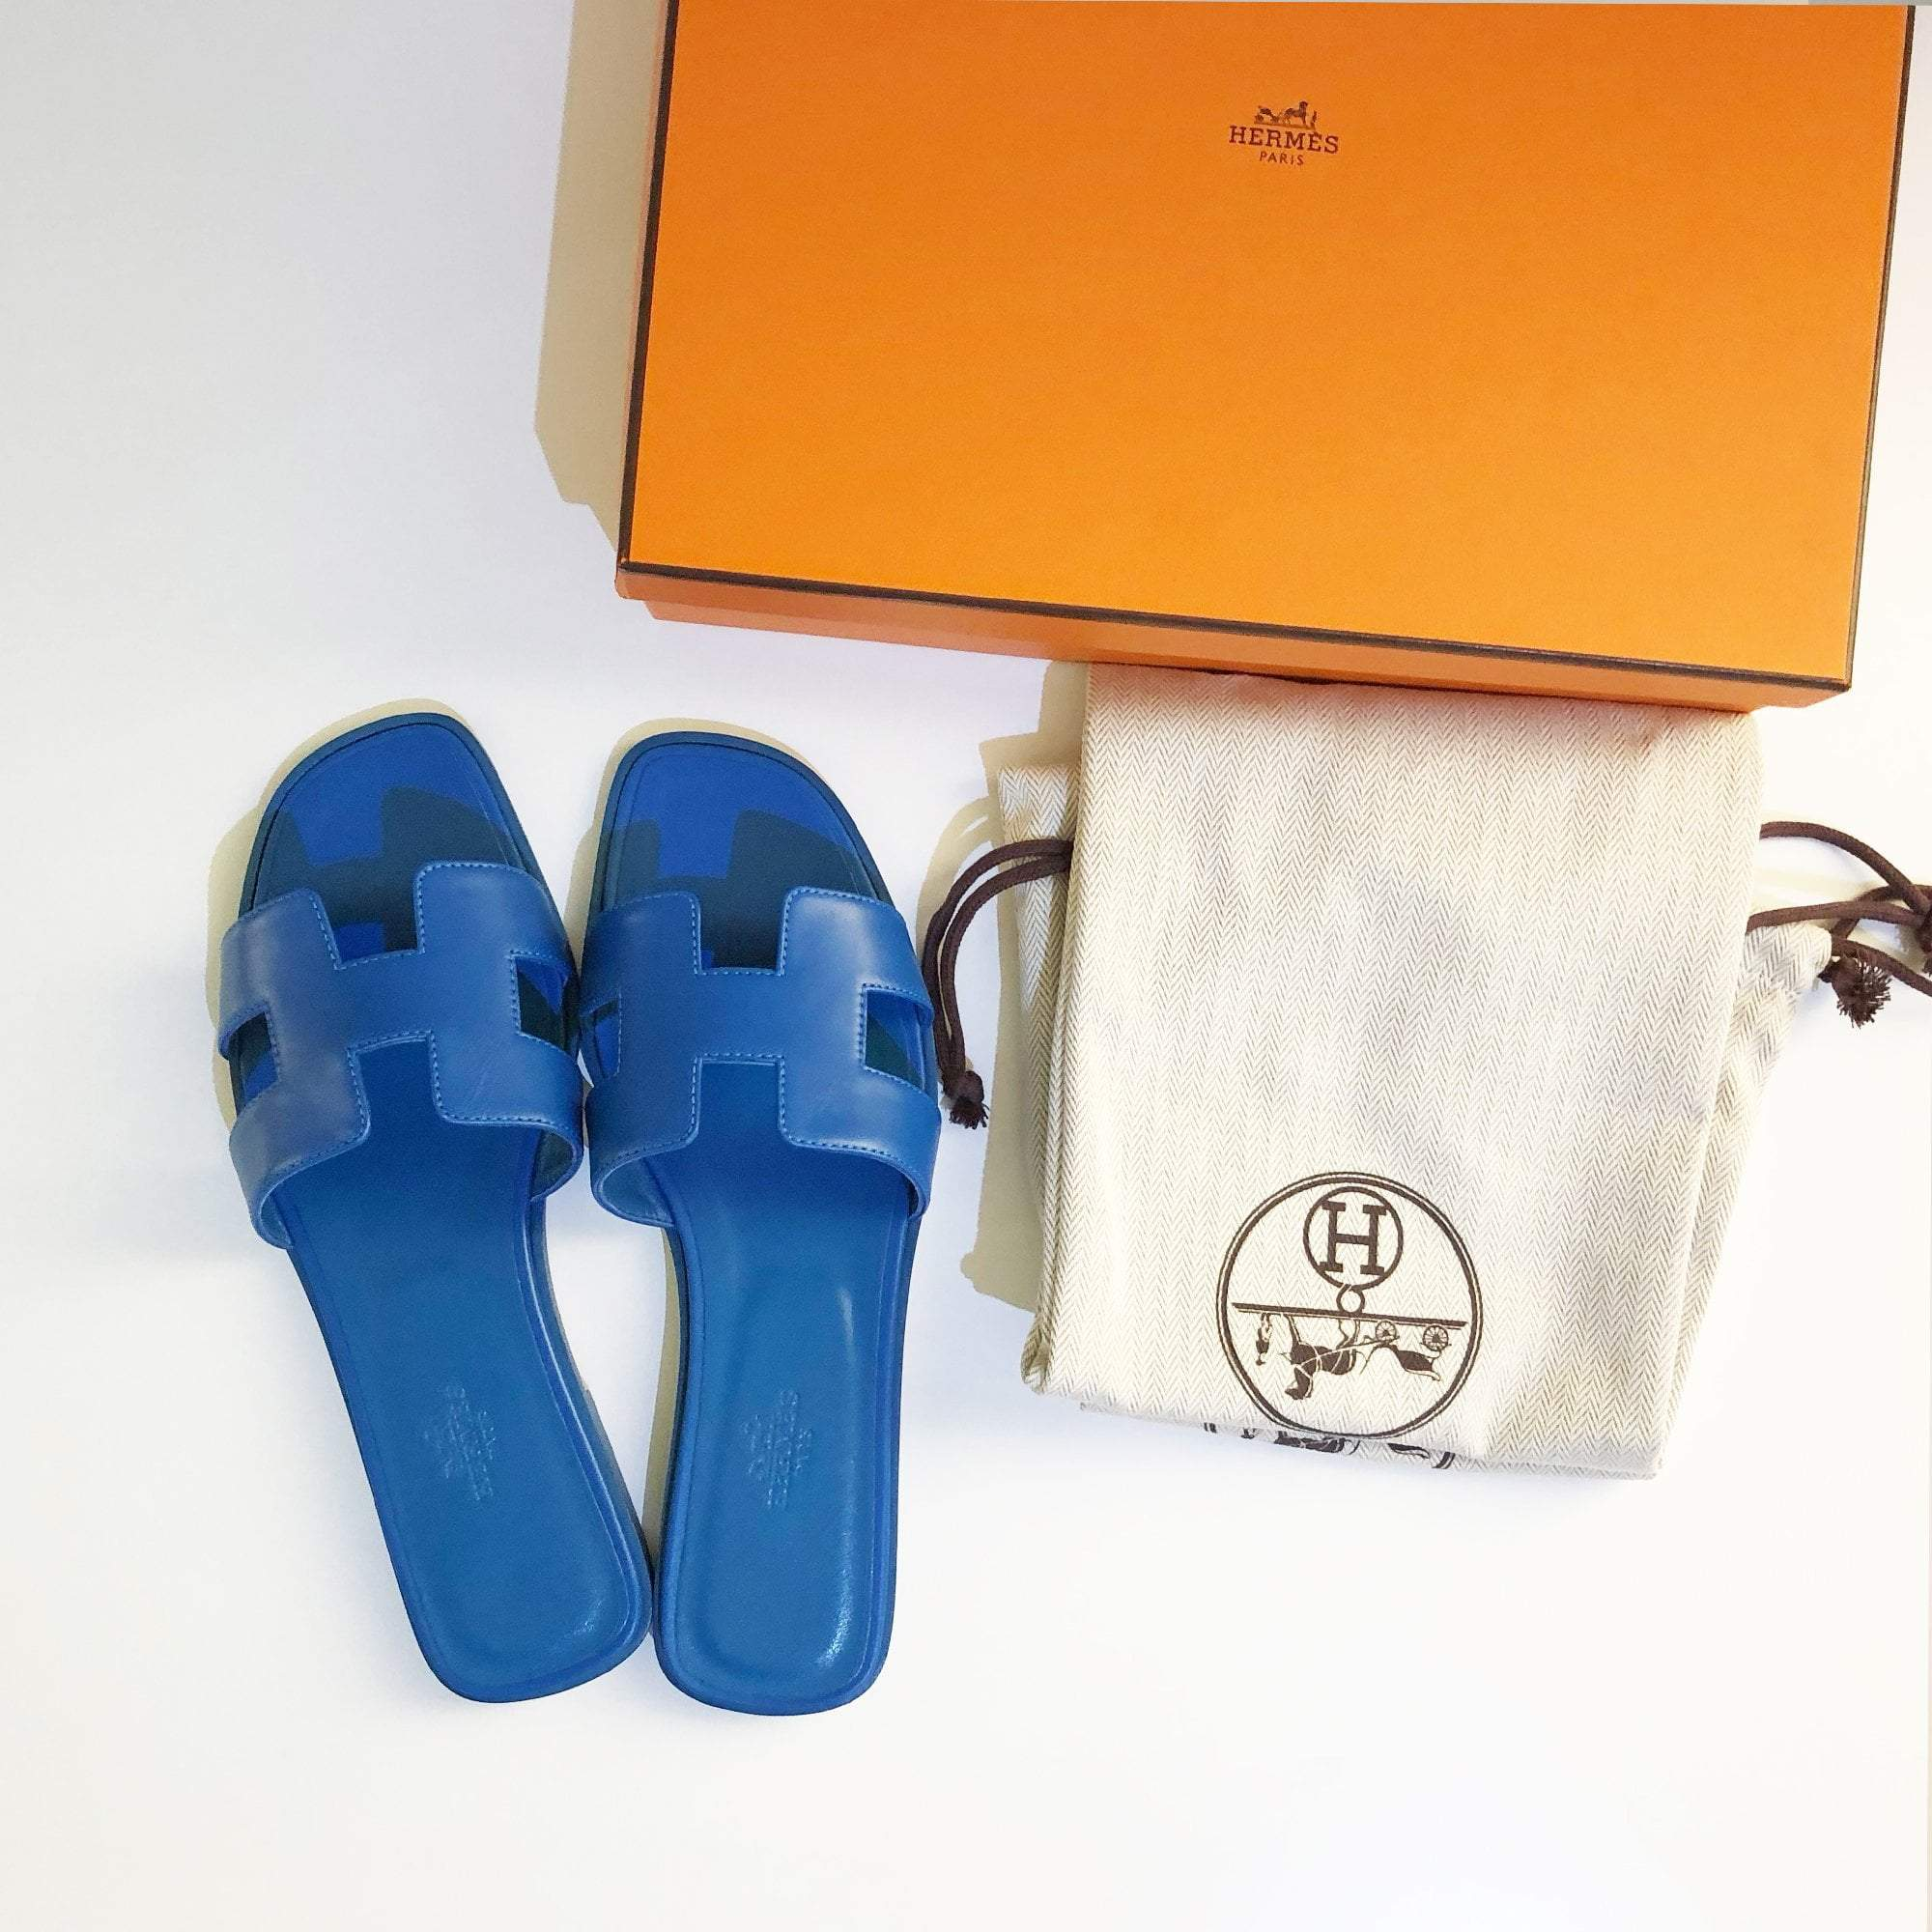 Hermes Blue Oran Leather Leather Slippers